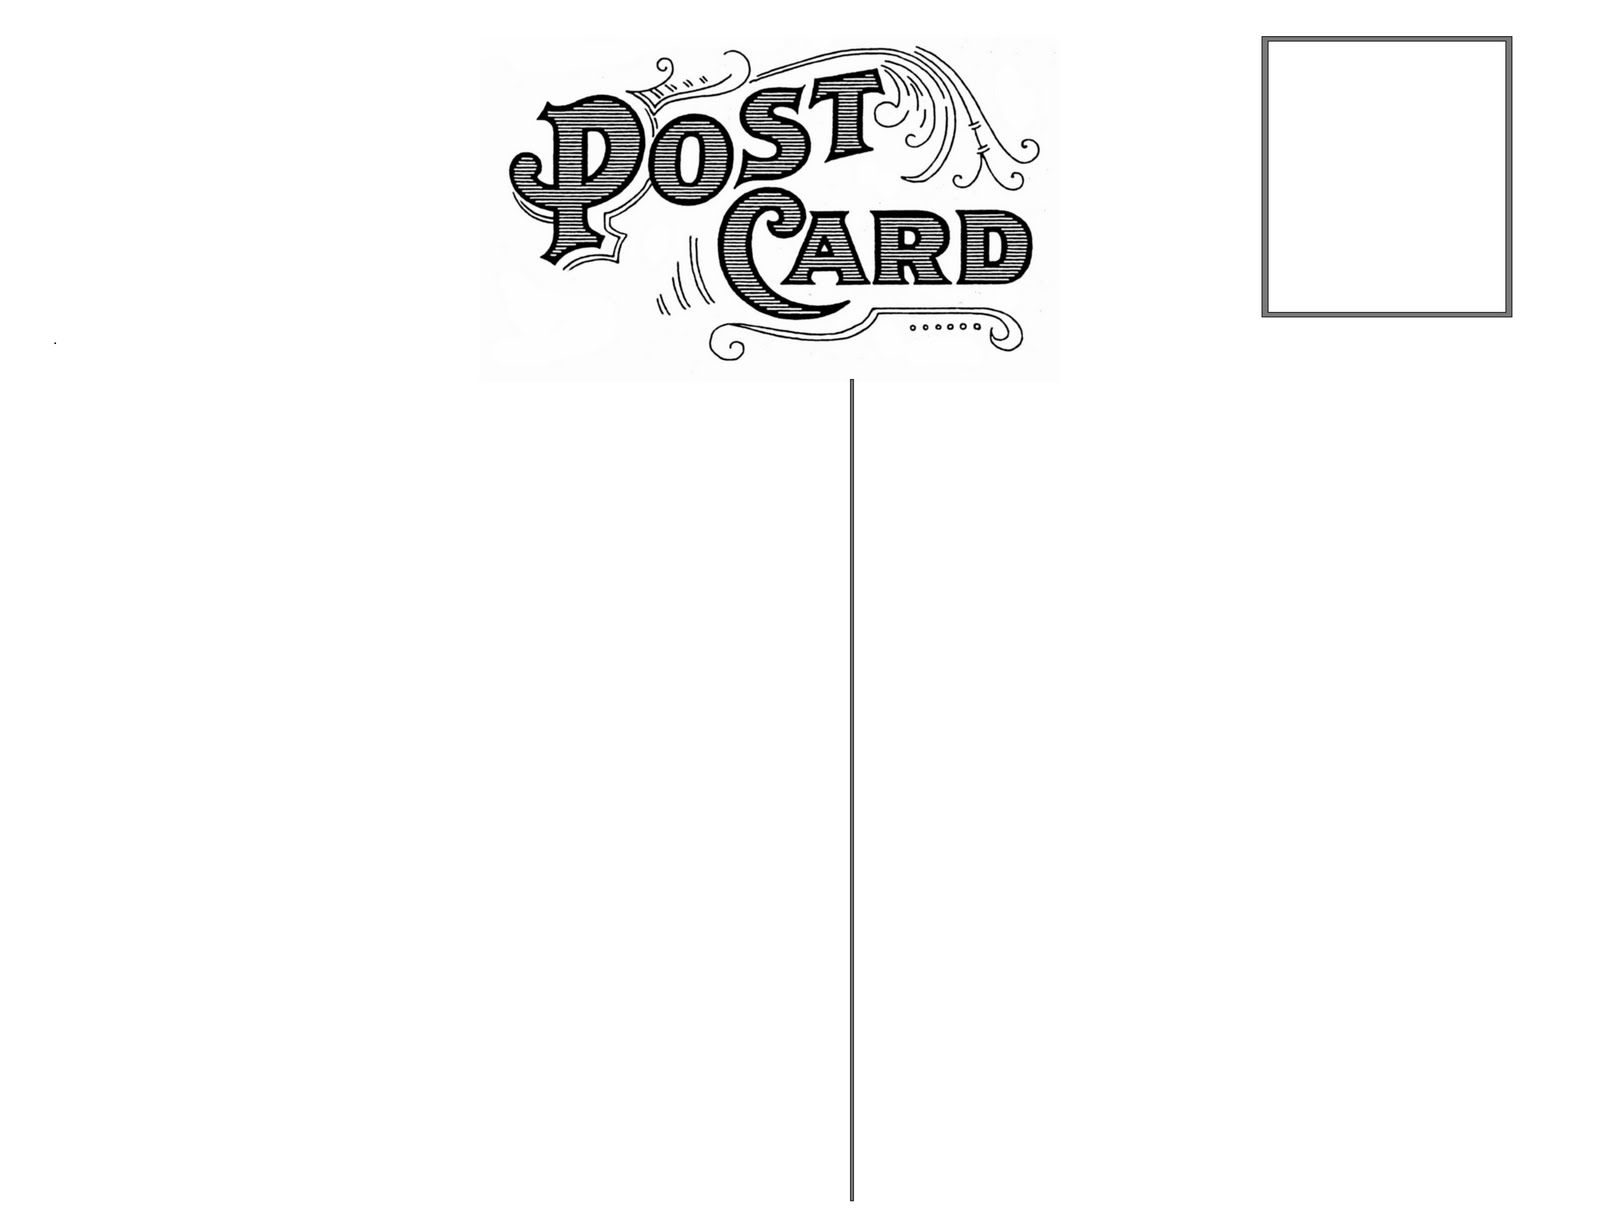 Free Printable Postcard Templates - Postcard template free download